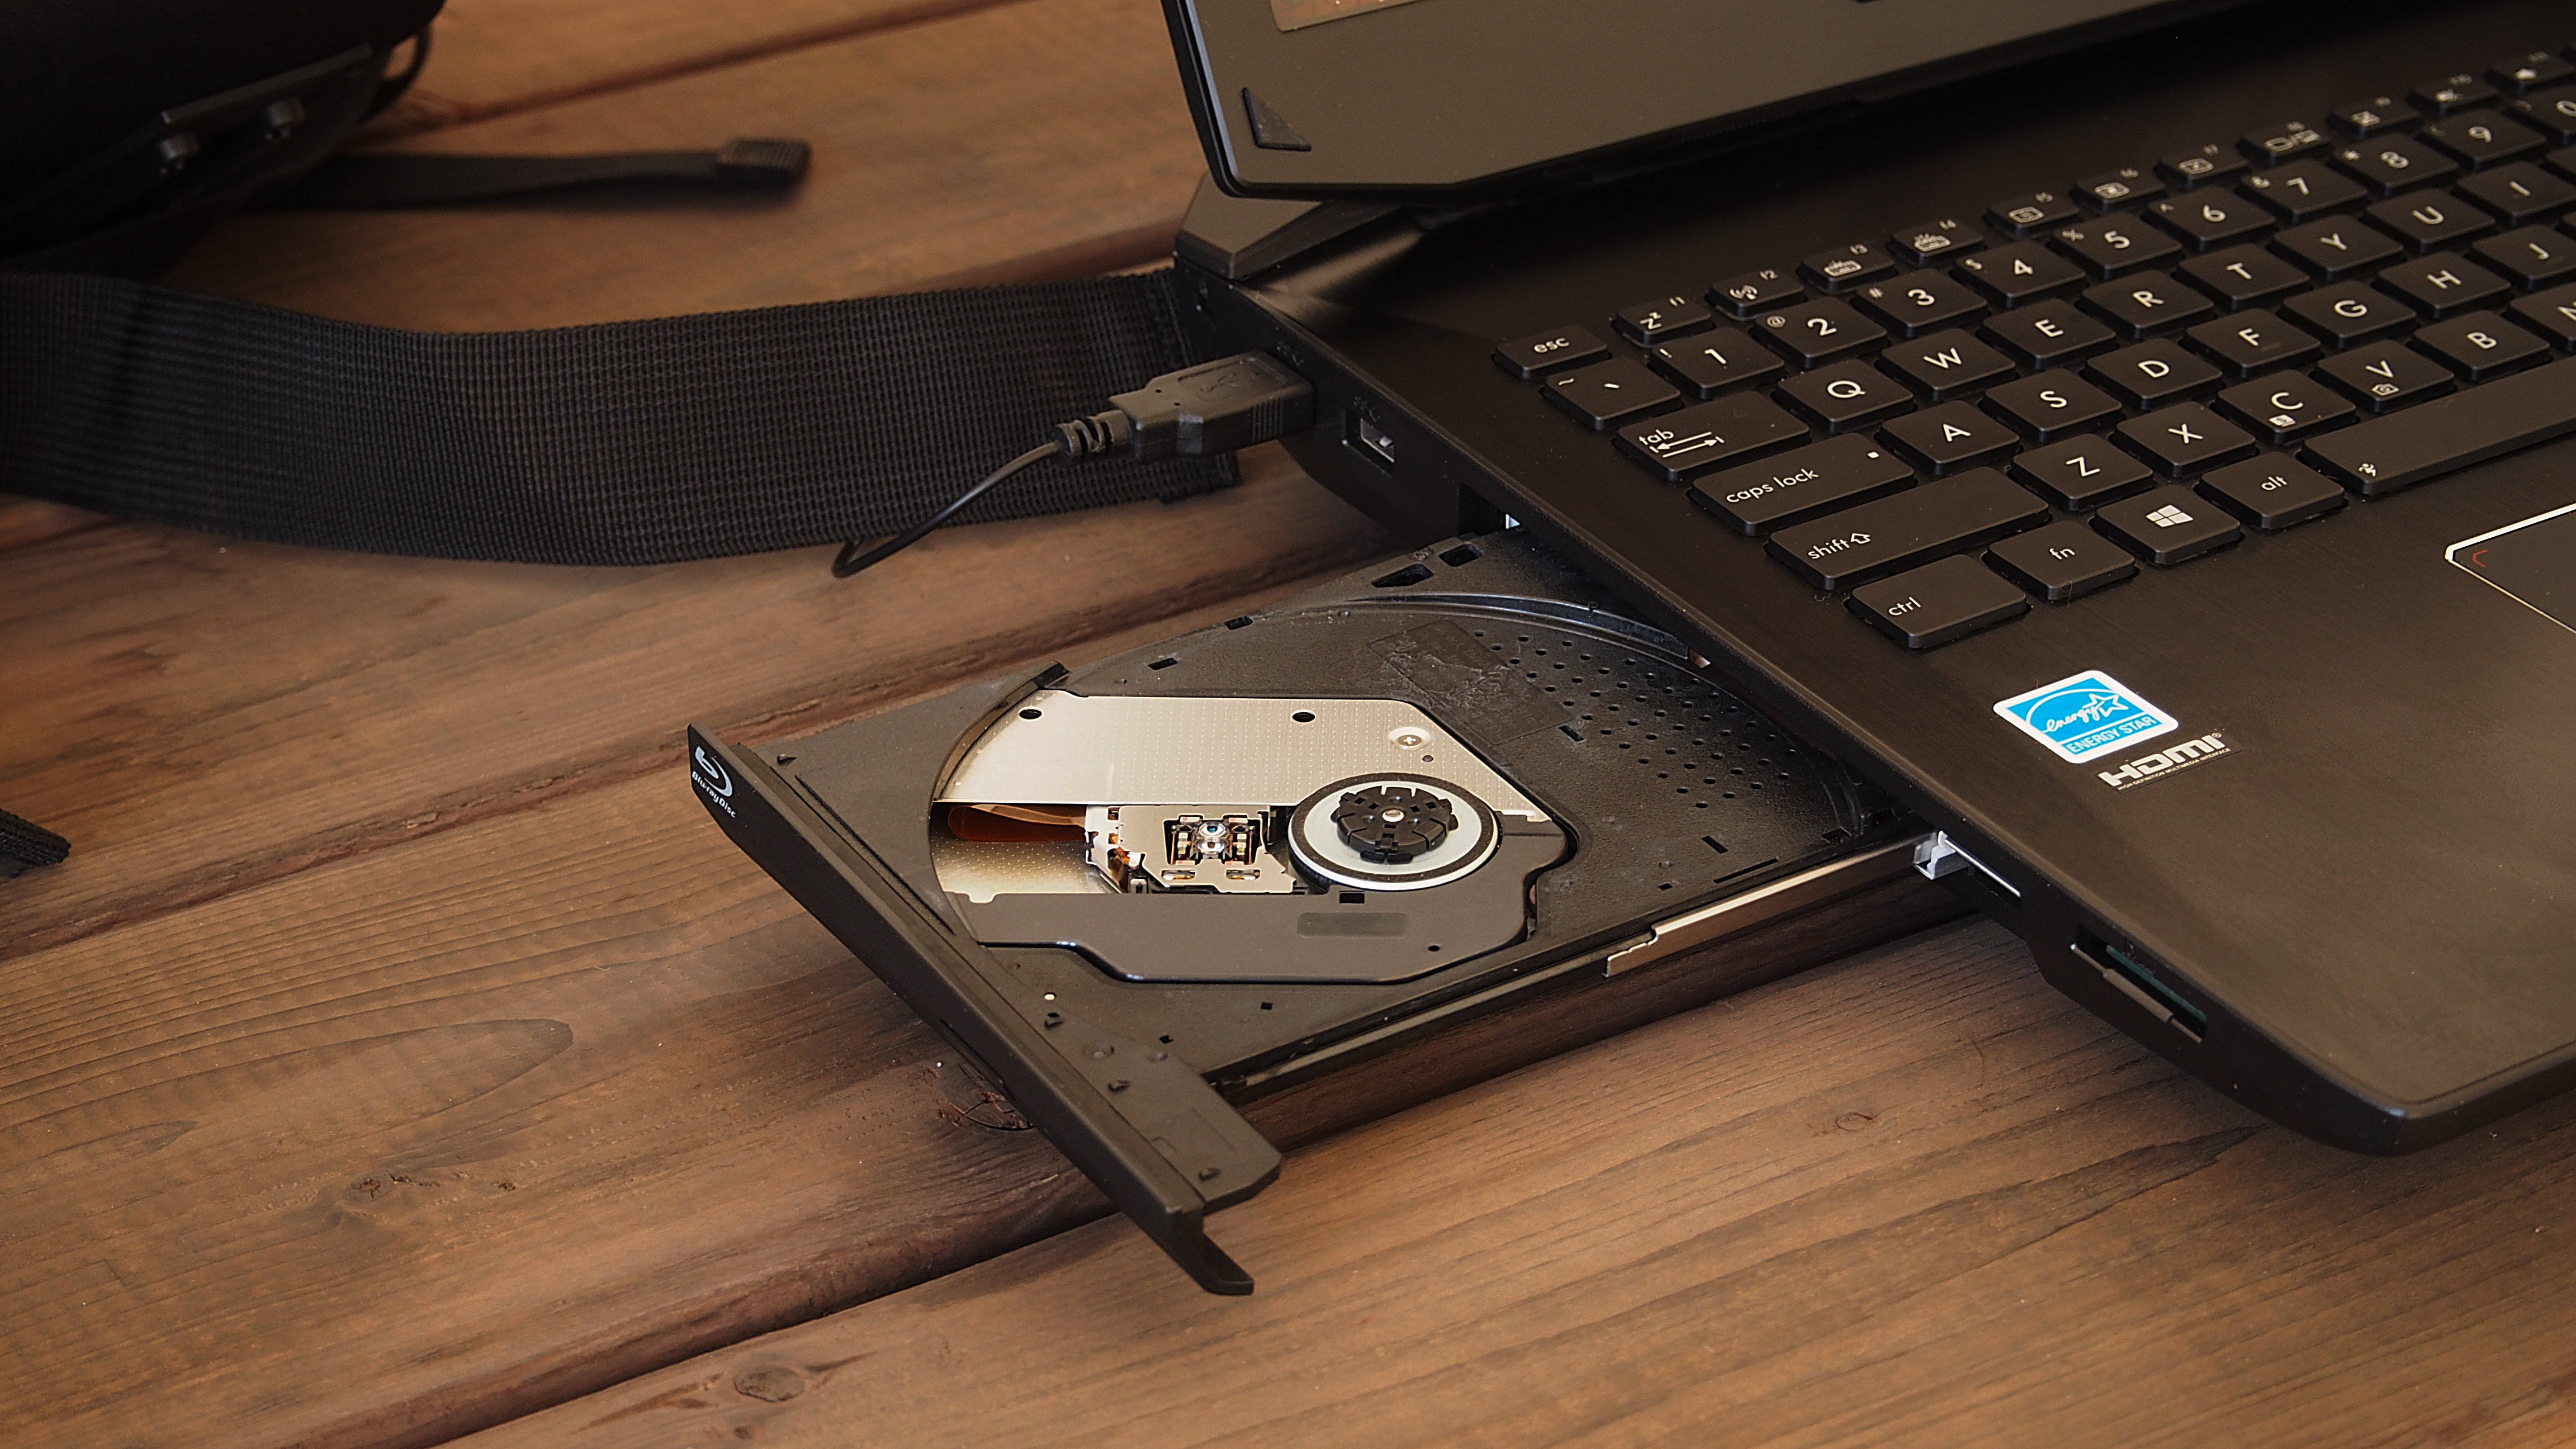 The left side of the G750JZ-XS72 has a Blu-ray drive, which both reads and writes.